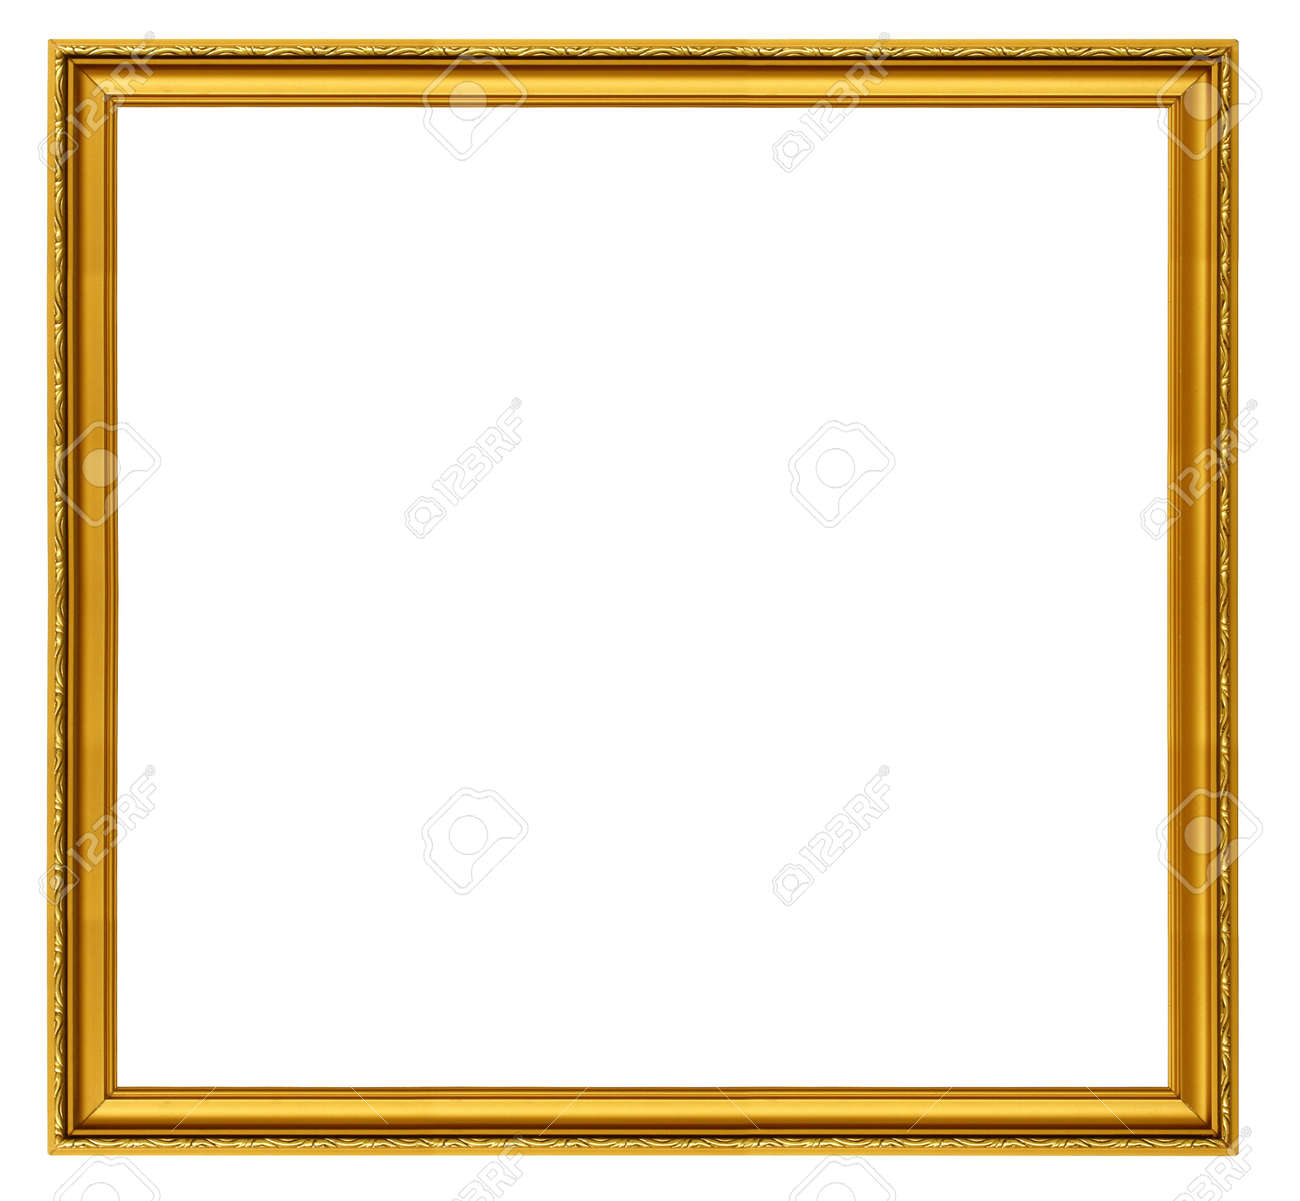 Xxl size golden square frame isolated on white stock photo xxl size golden square frame isolated on white stock photo 714647 jeuxipadfo Choice Image